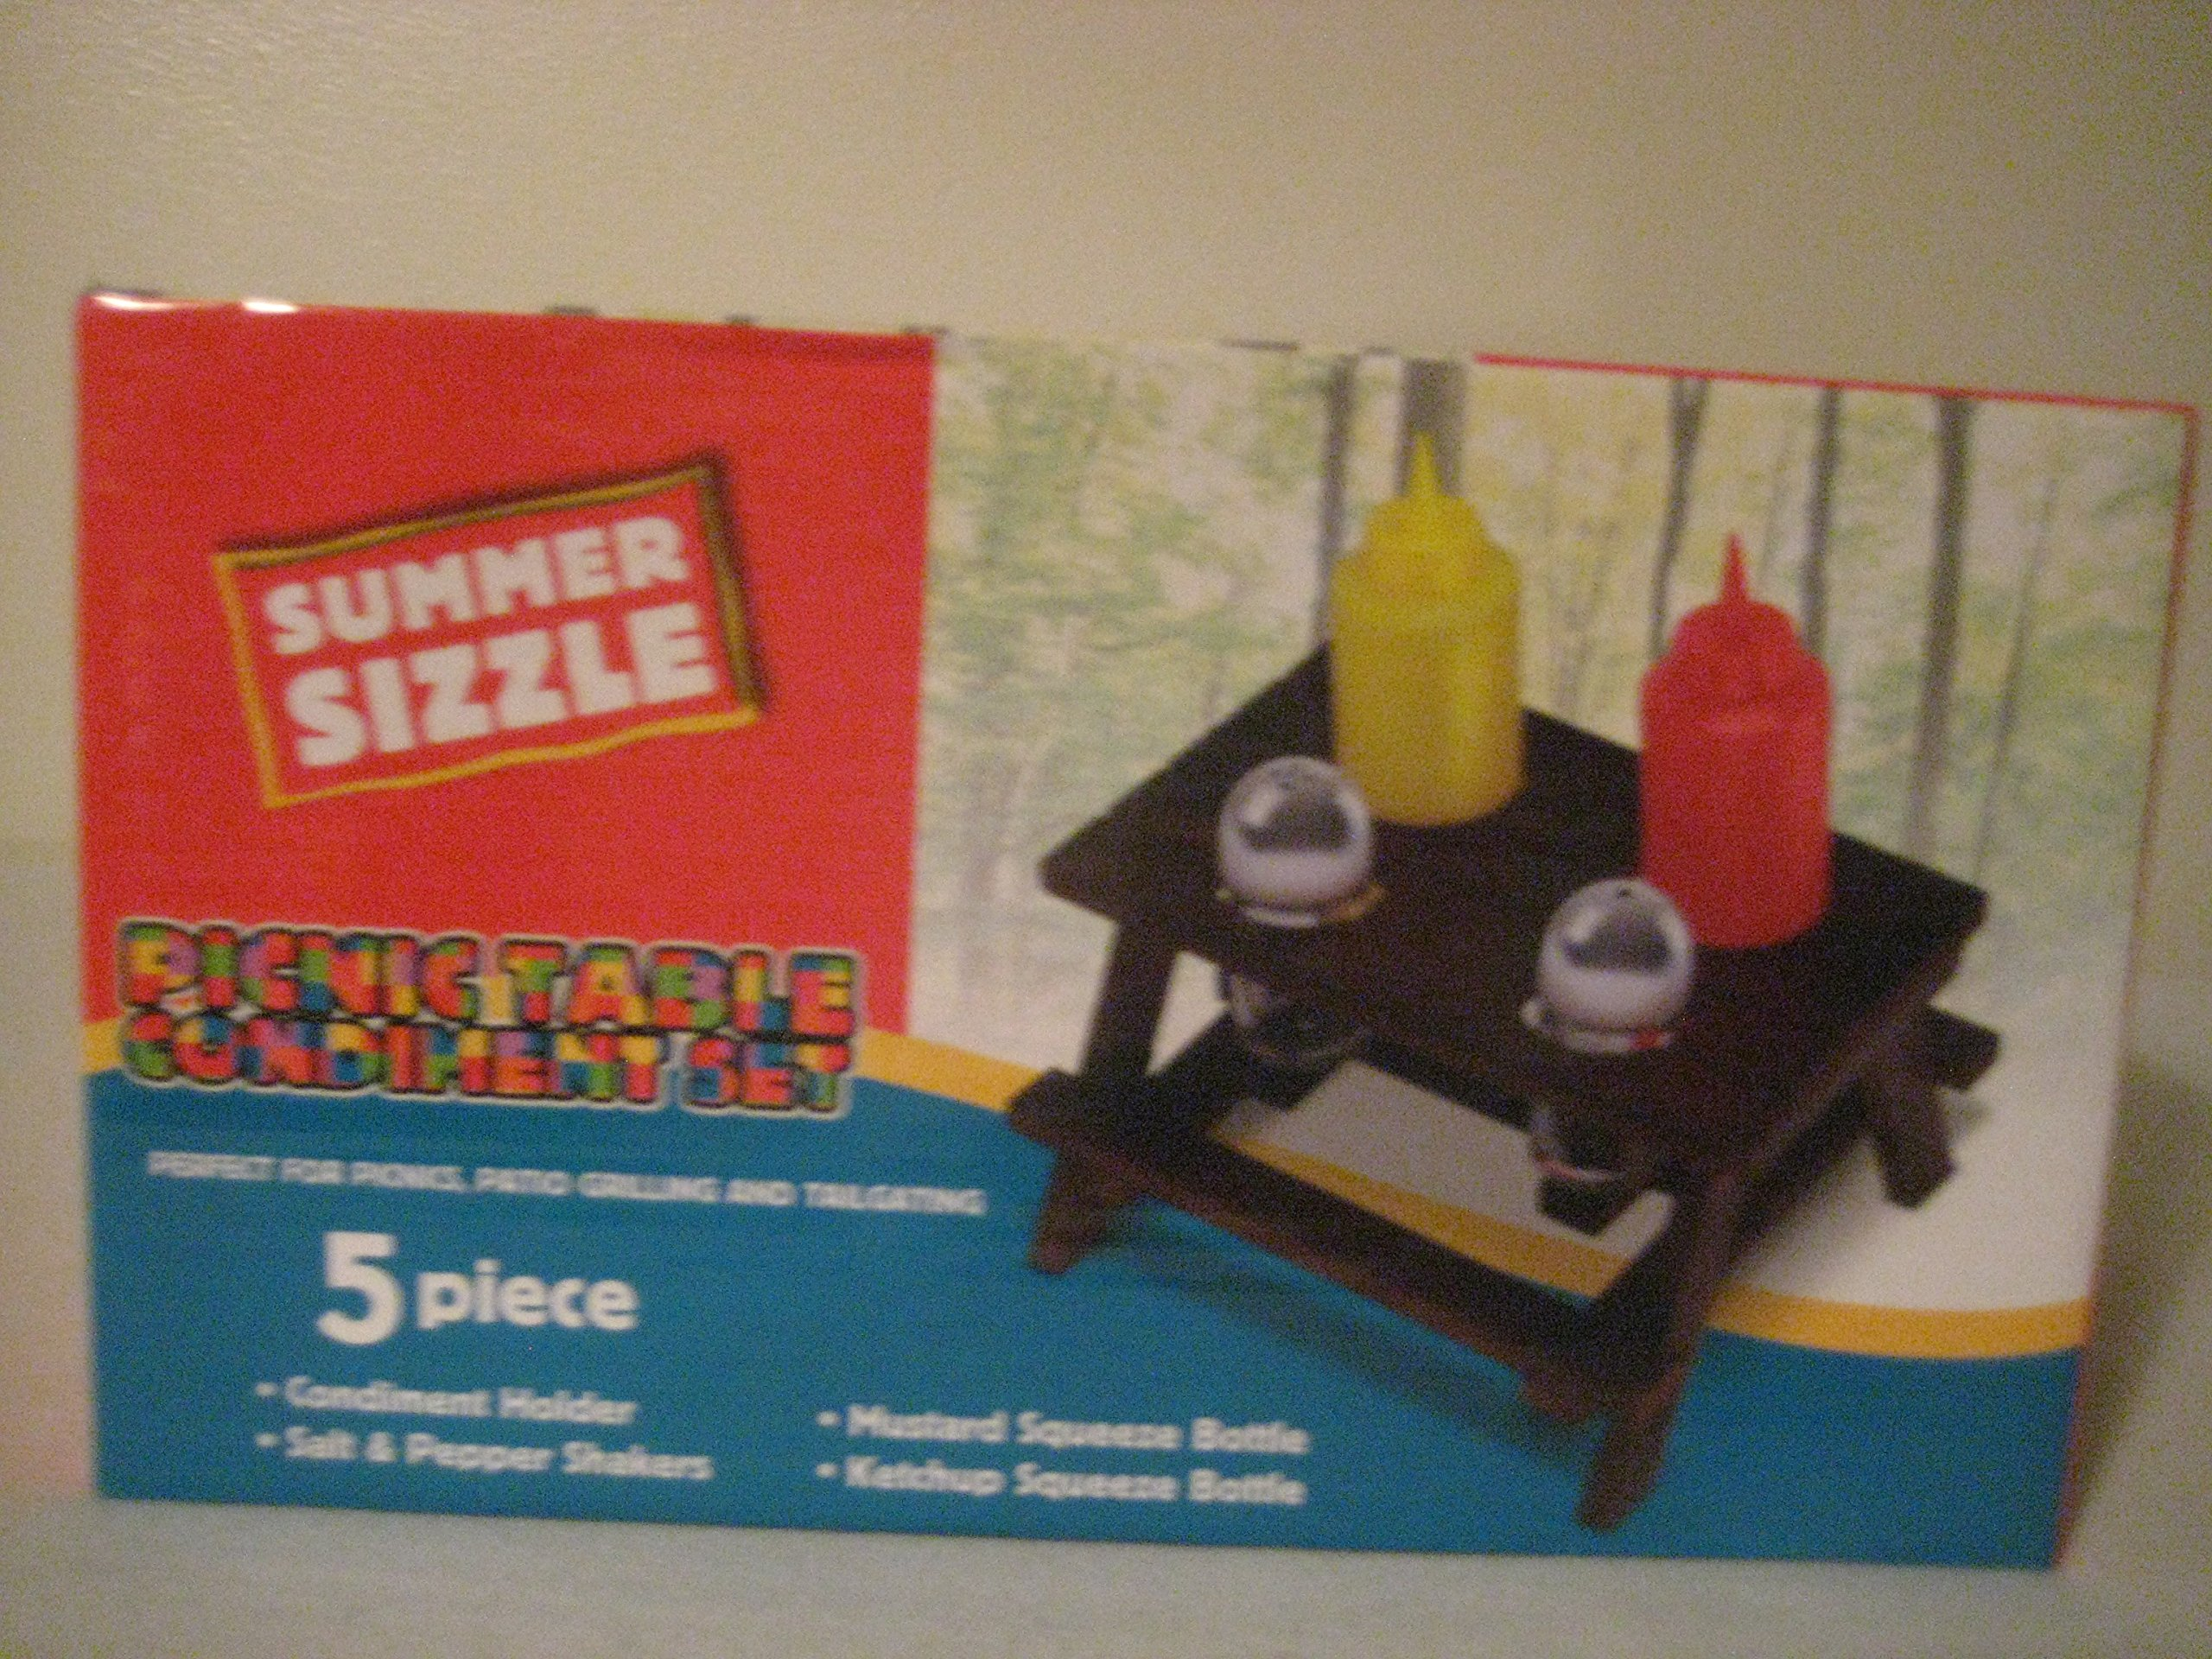 Summer Sizzle Picnic Table Condiment Set Buy Online In Cayman Islands At Cayman Desertcart Com Productid 20228002